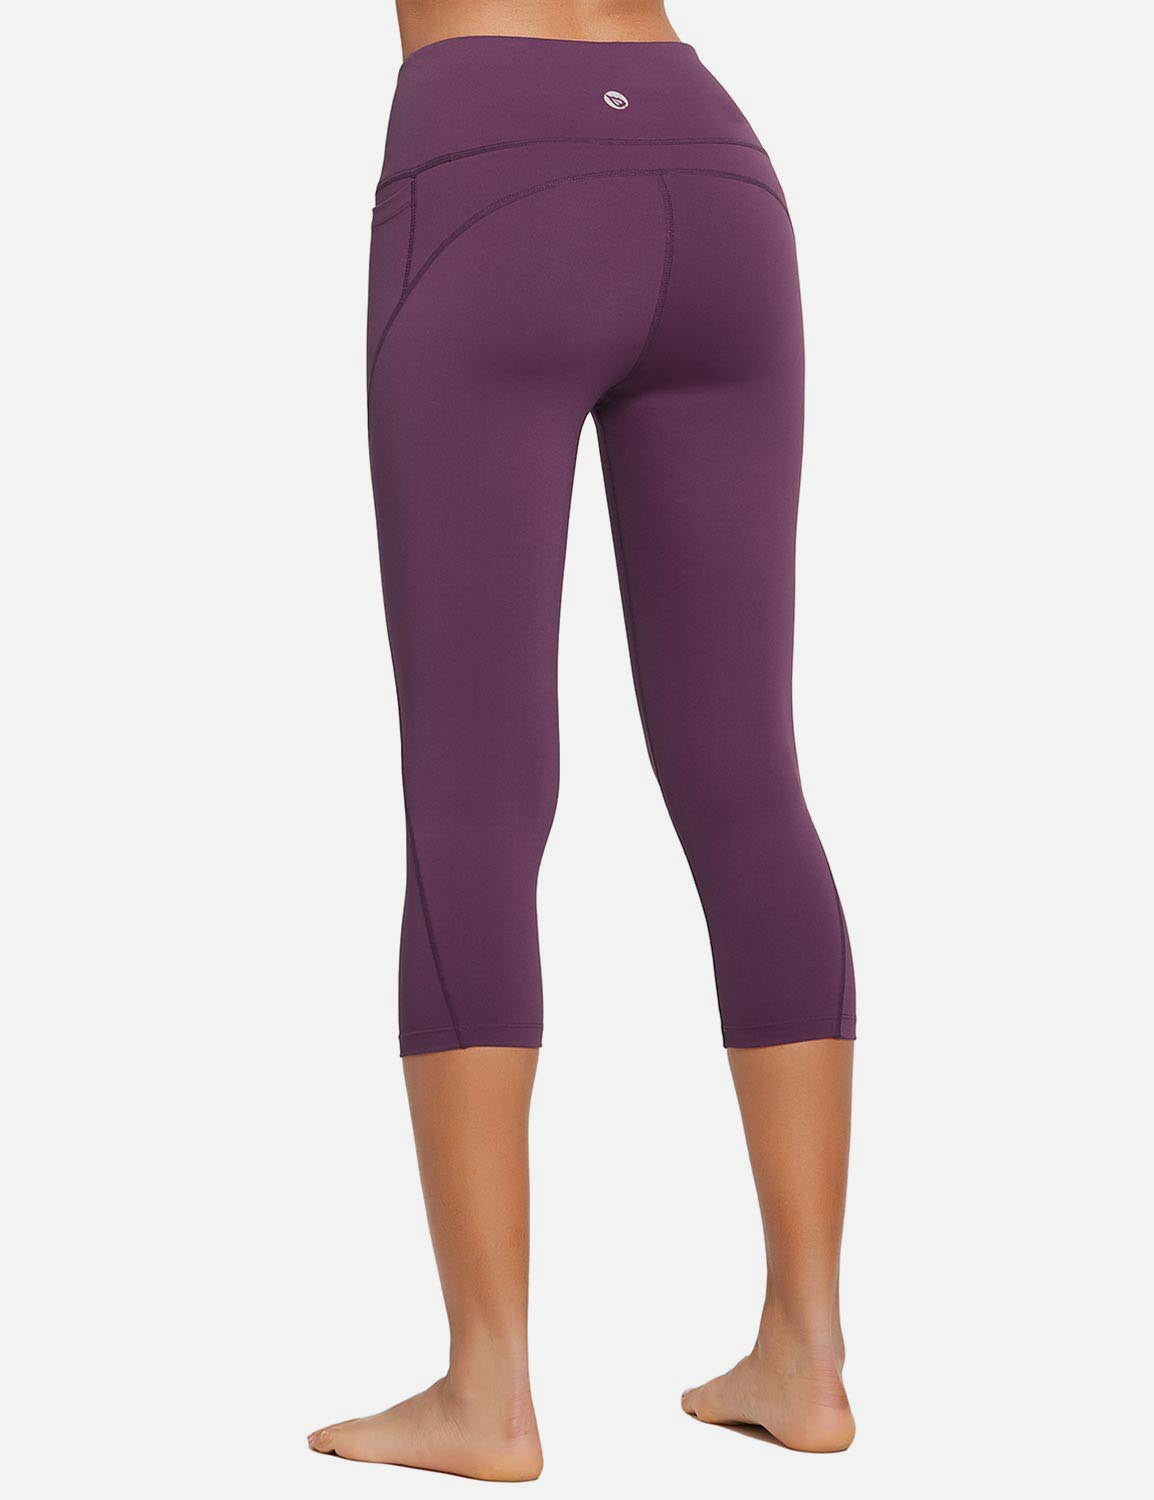 Baleaf Womens High Rise Bottom Contour Pocketed Capris Dark Magenta Back